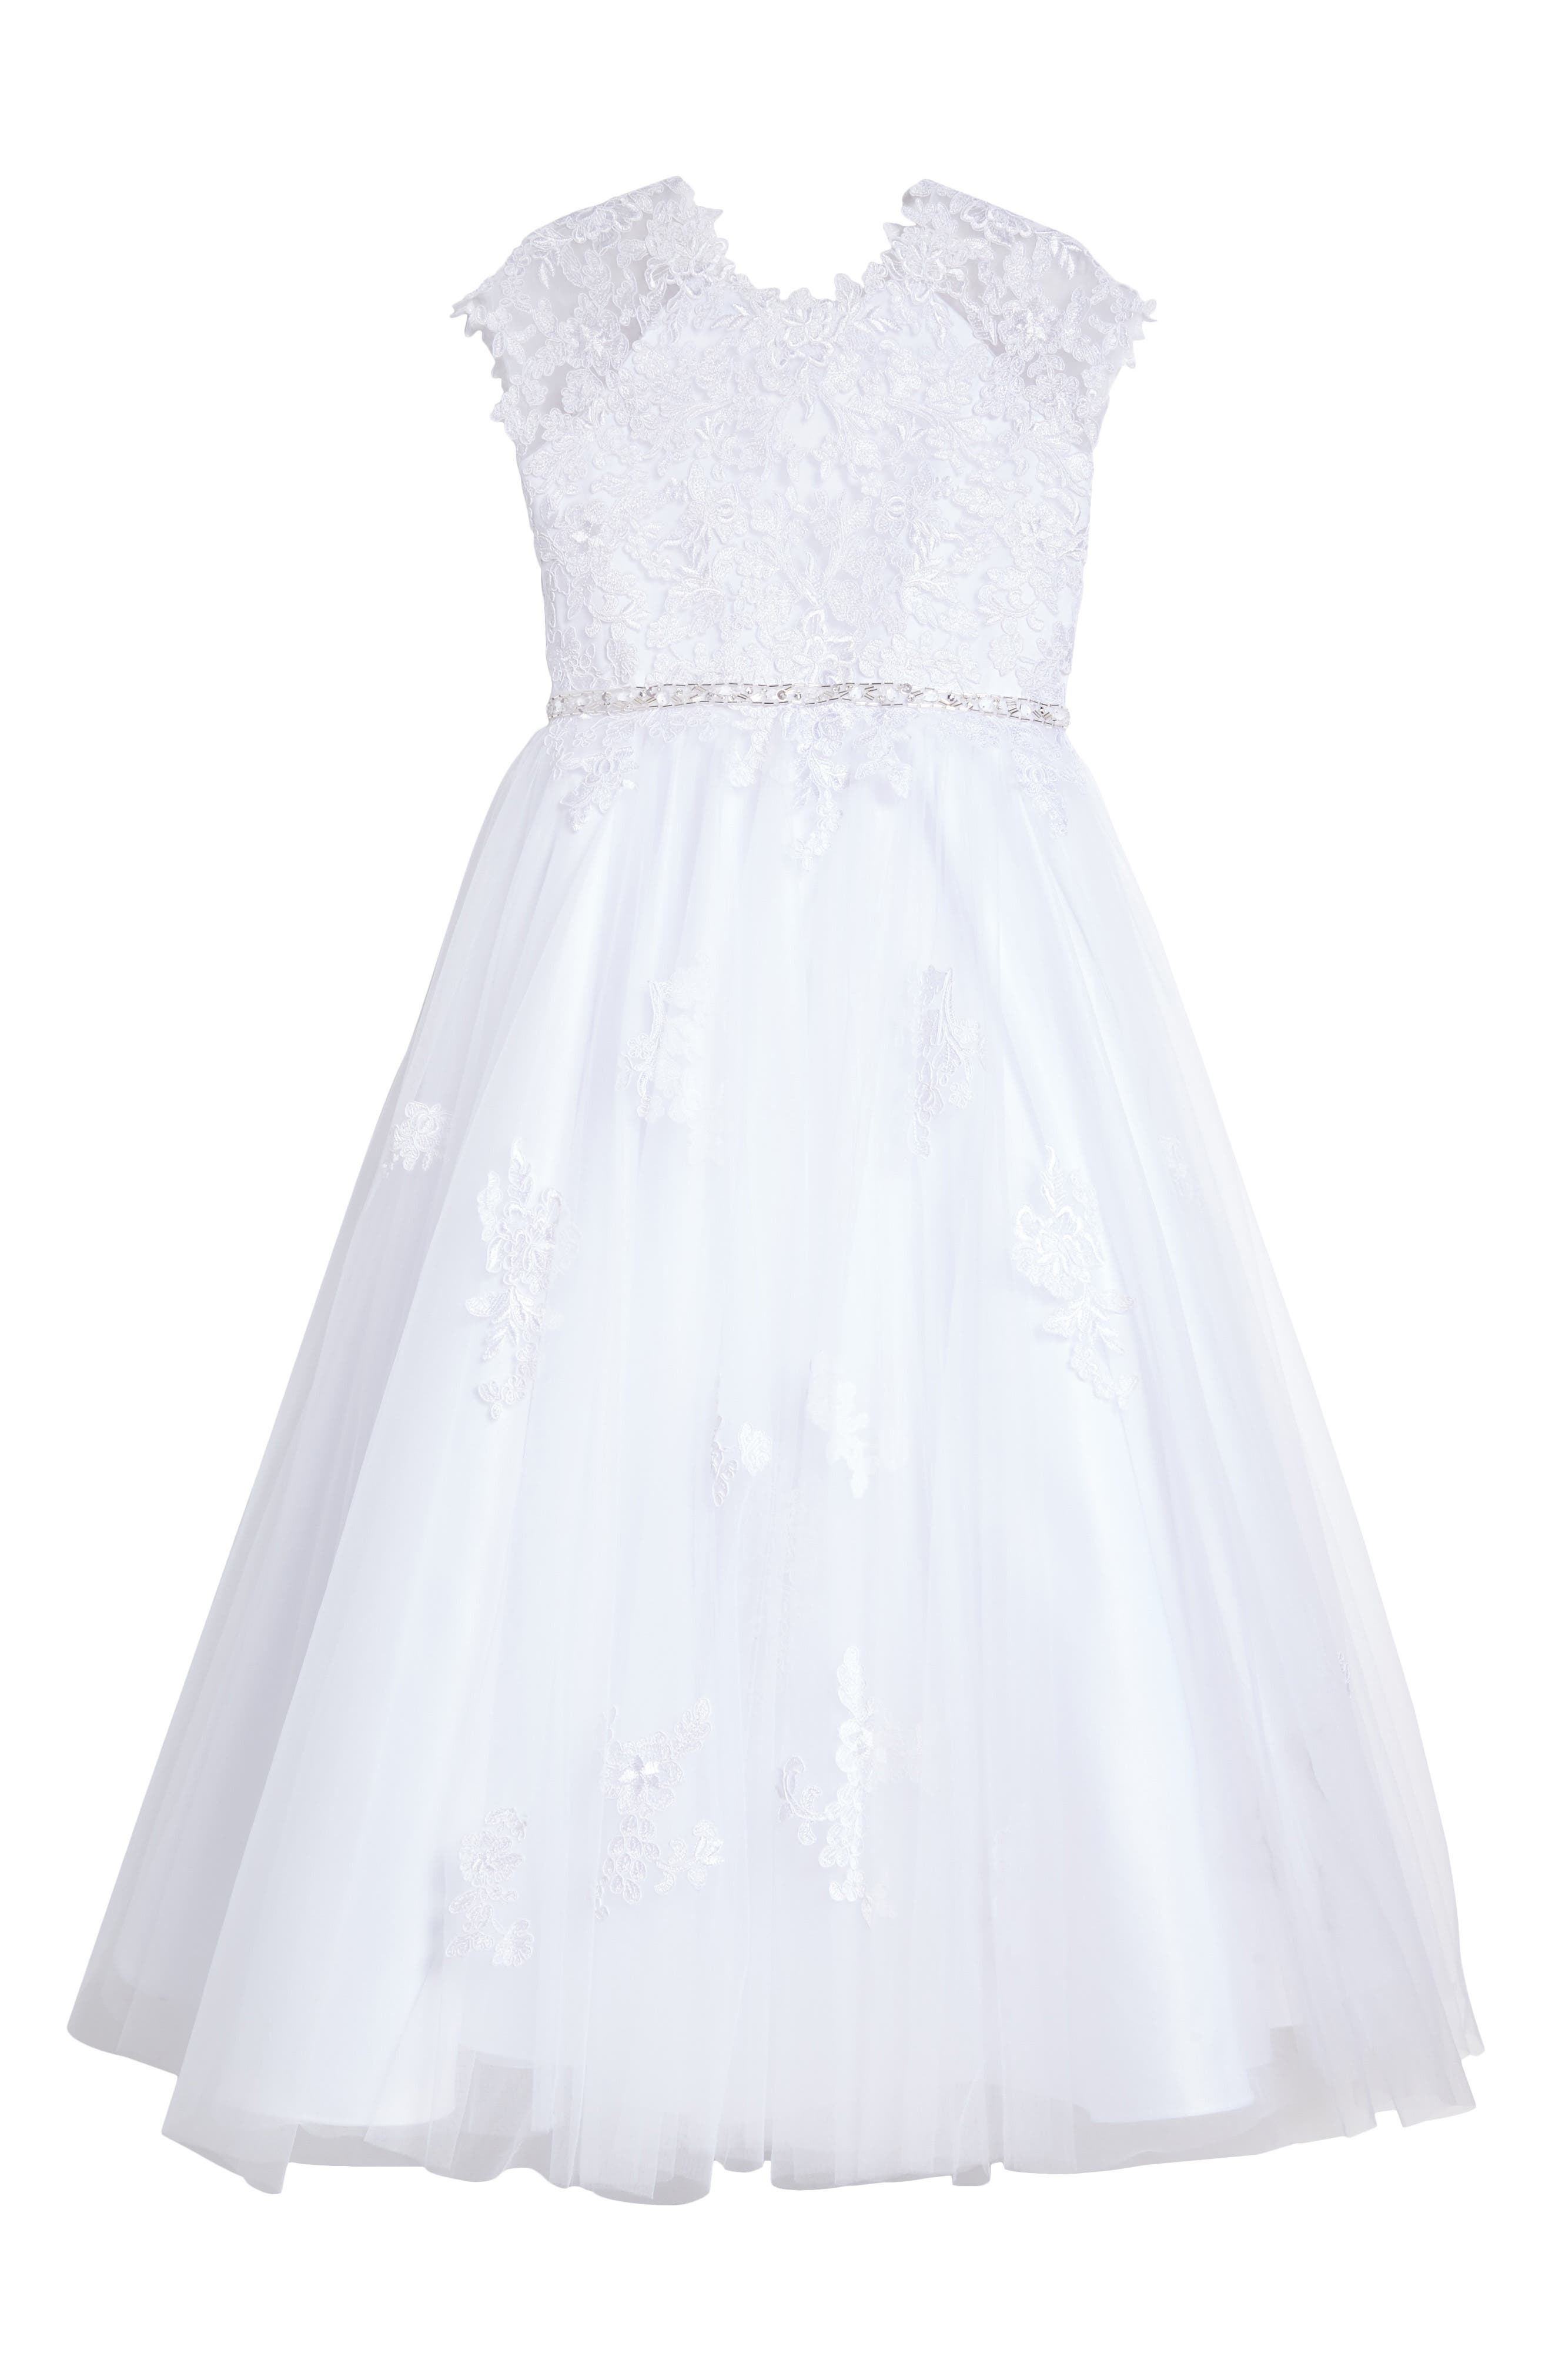 Main Image - Joan Calabrese for Mon Cheri Lace Appliqué Tulle First Communion Dress (Little Girls & Big Girls)